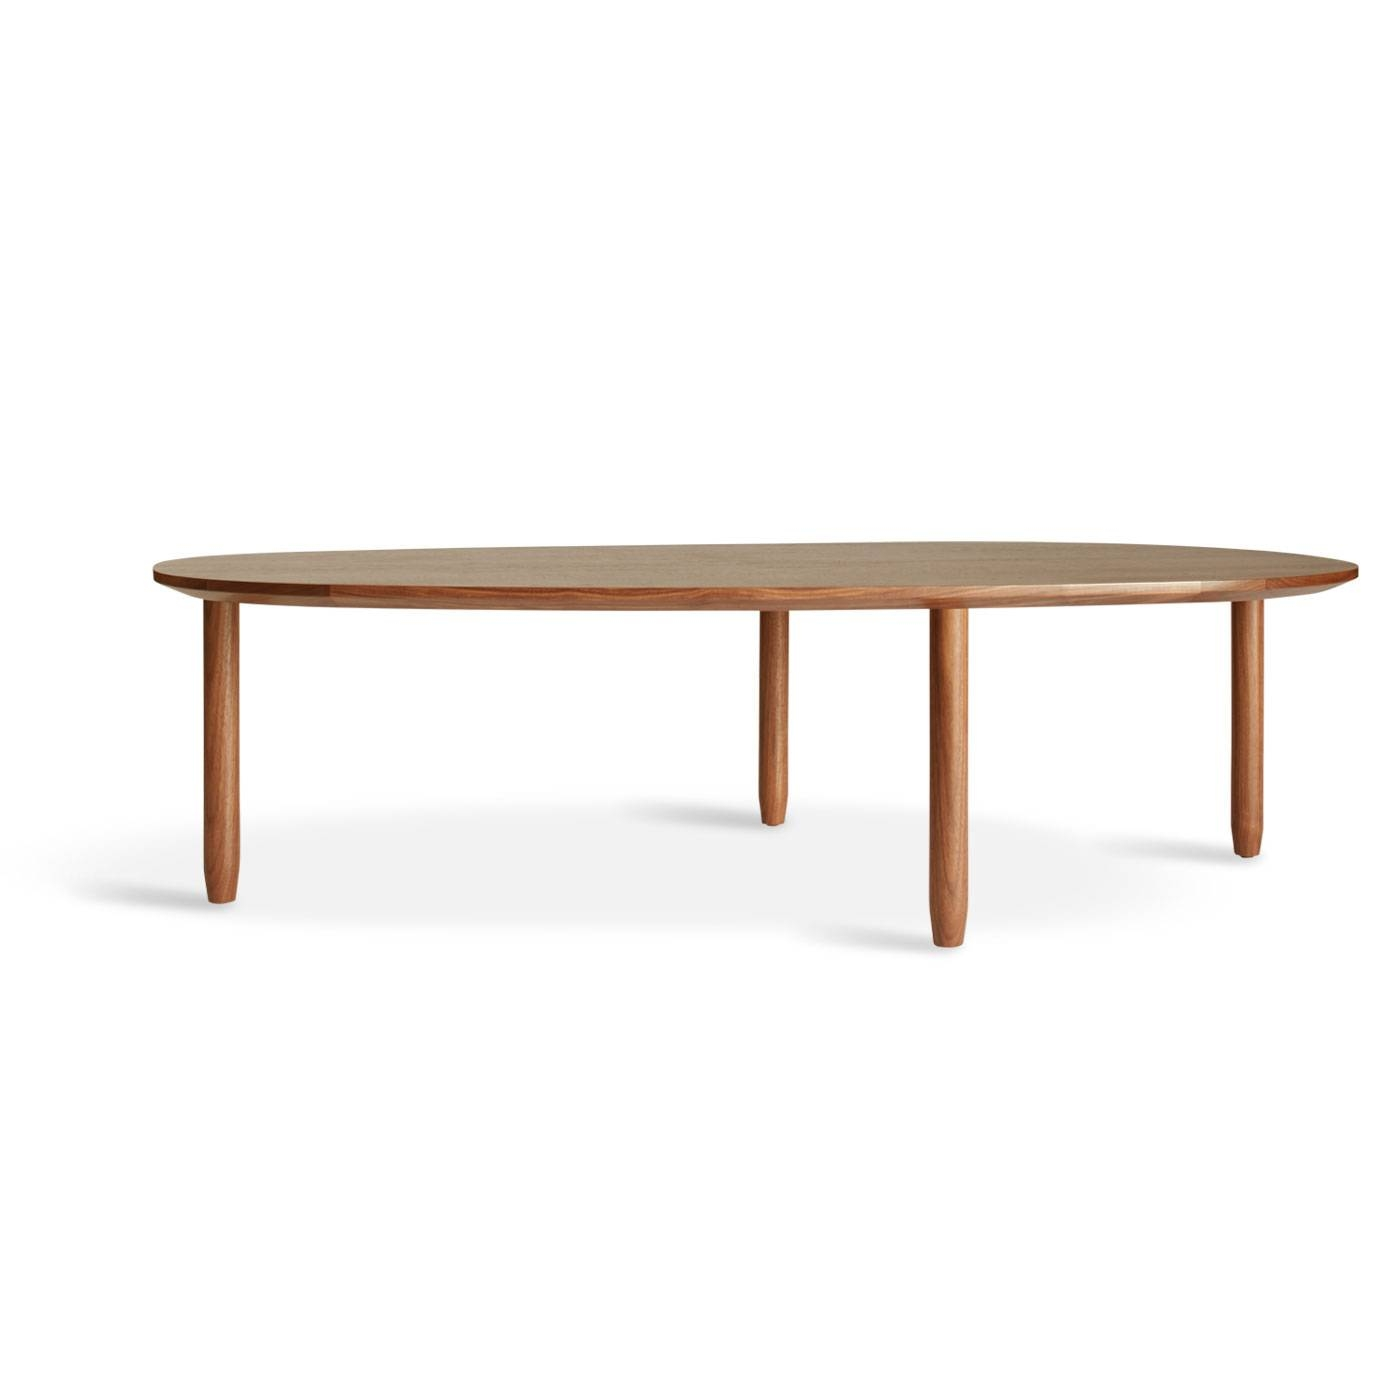 Swole Large Table - Large Modern Coffee Table | Blu Dot throughout Large Low Coffee Tables (Image 15 of 15)